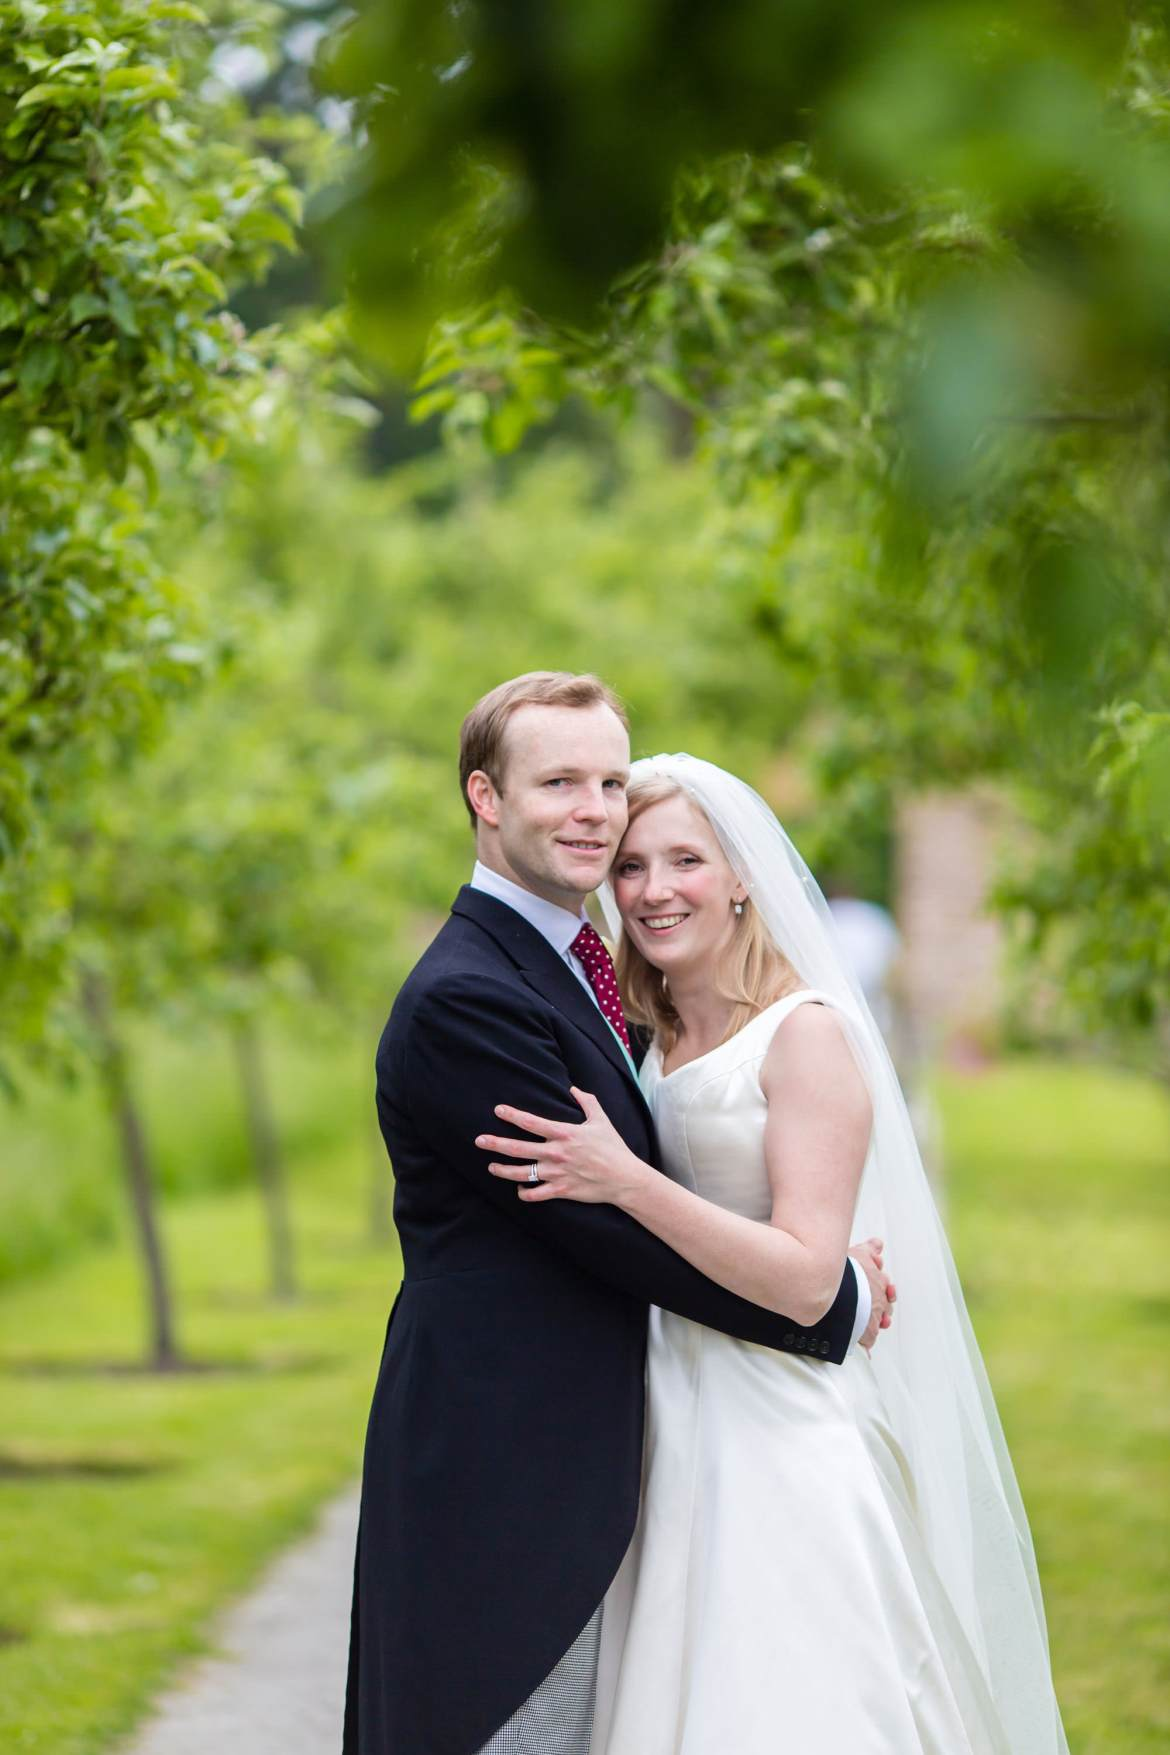 more Fulham Palace Wedding photos of the bride and groom